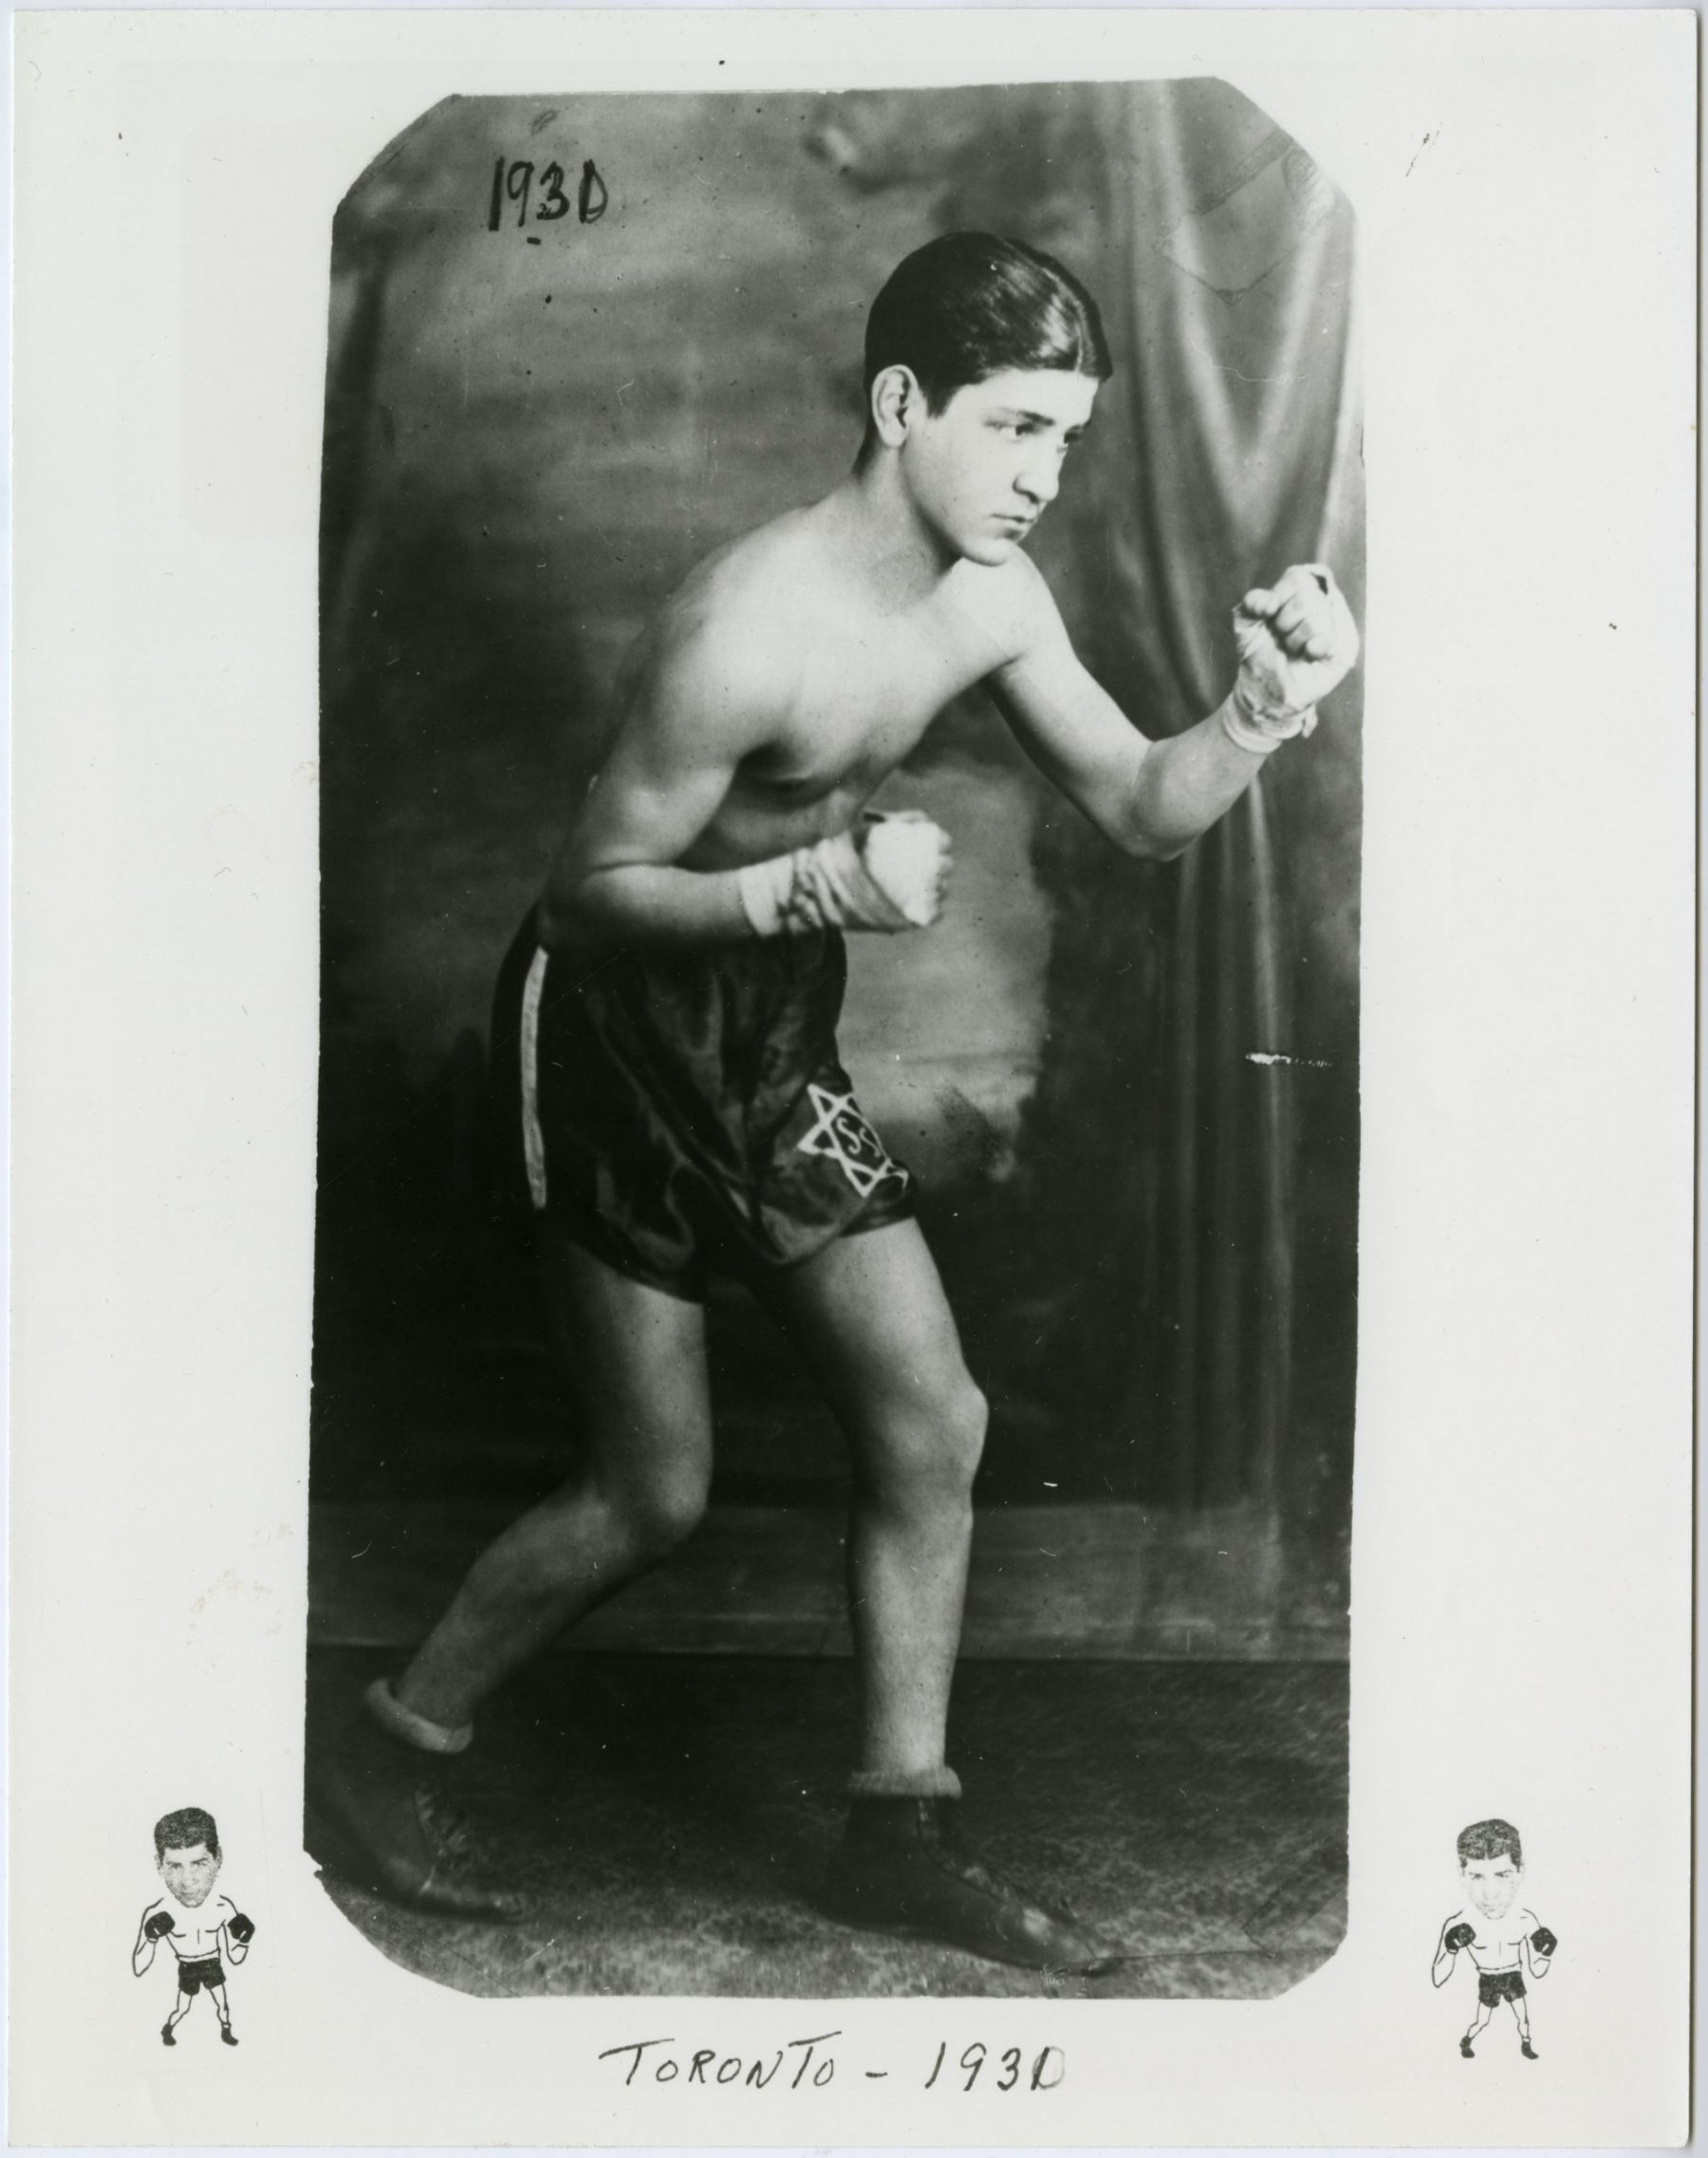 Sammy Luftspring at fourteen years old in 1930. Two years later he began competing in boxing matches. He was a skilled fighter and always showed off his Jewish pride wearing a Magen David on his boxing shorts.   OJA, item 2516.